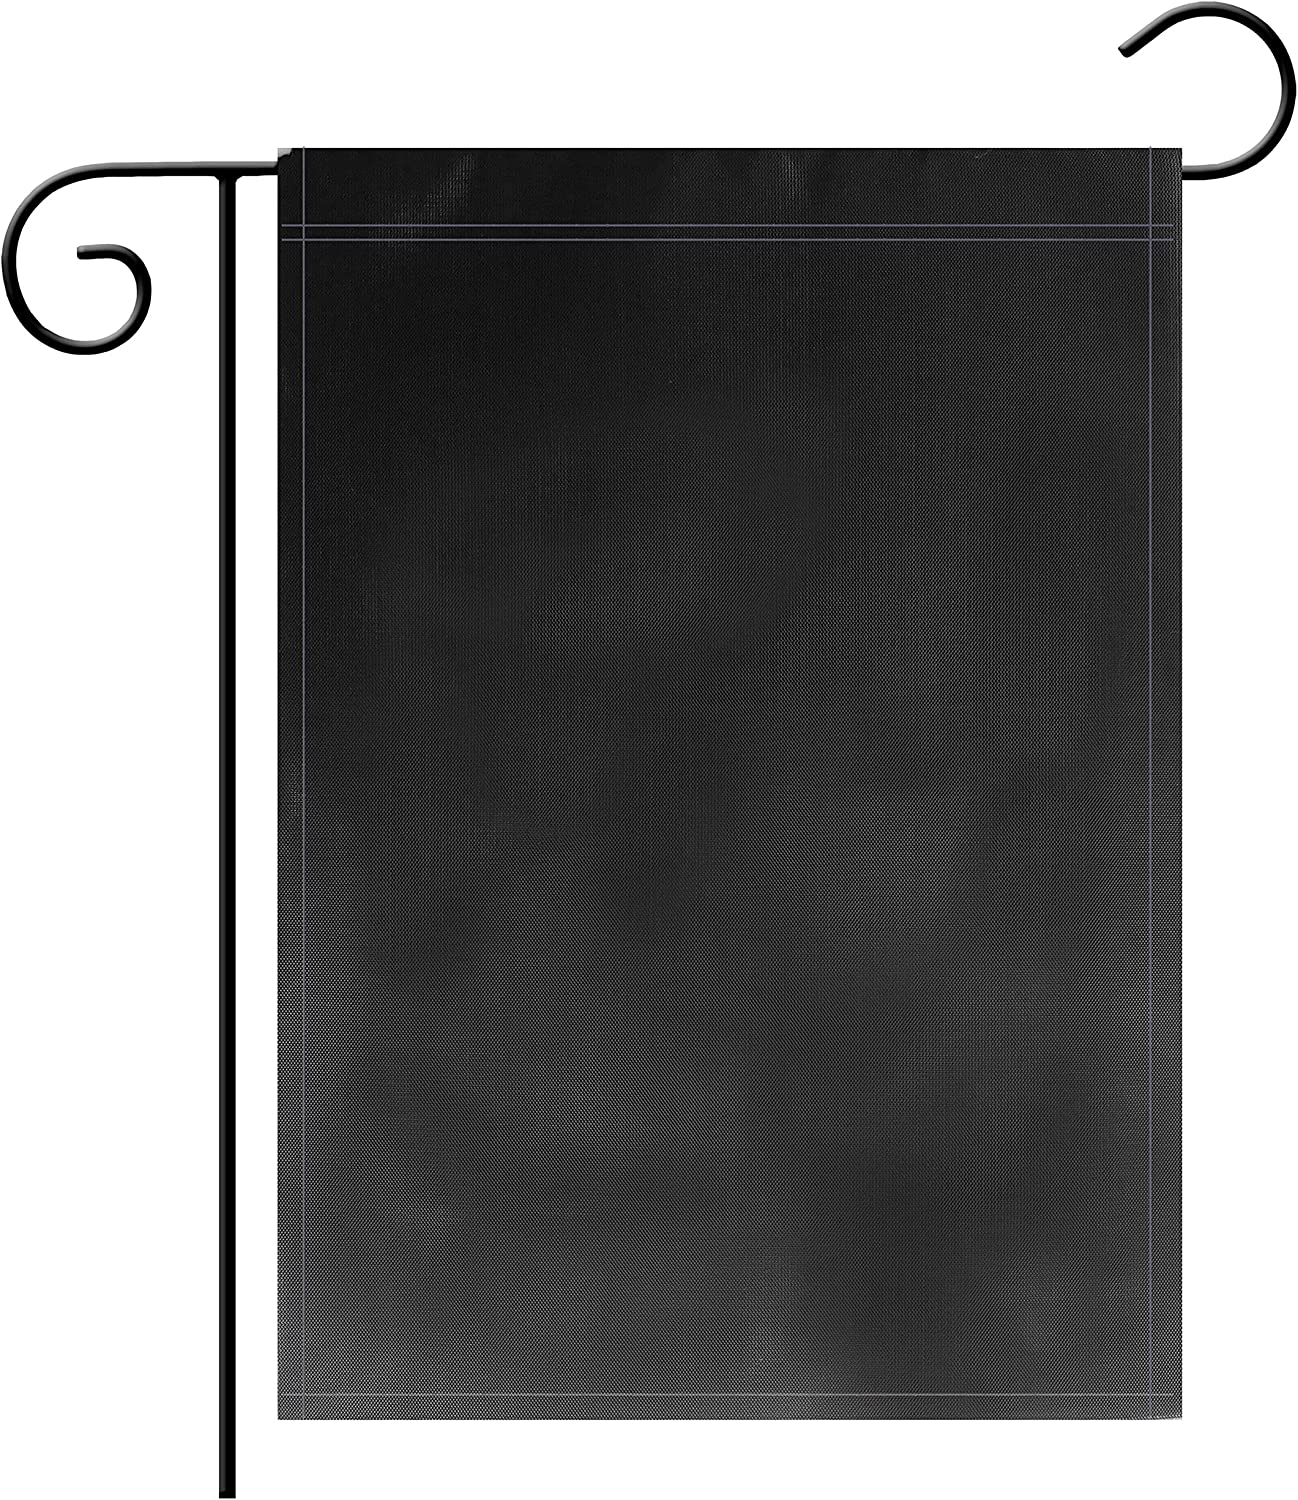 "TSMD Solid Black Blank Garden Flag Double Sided Plain Black DIY Flags,Outdoor Yard Decorative Flags,12""x 18"""